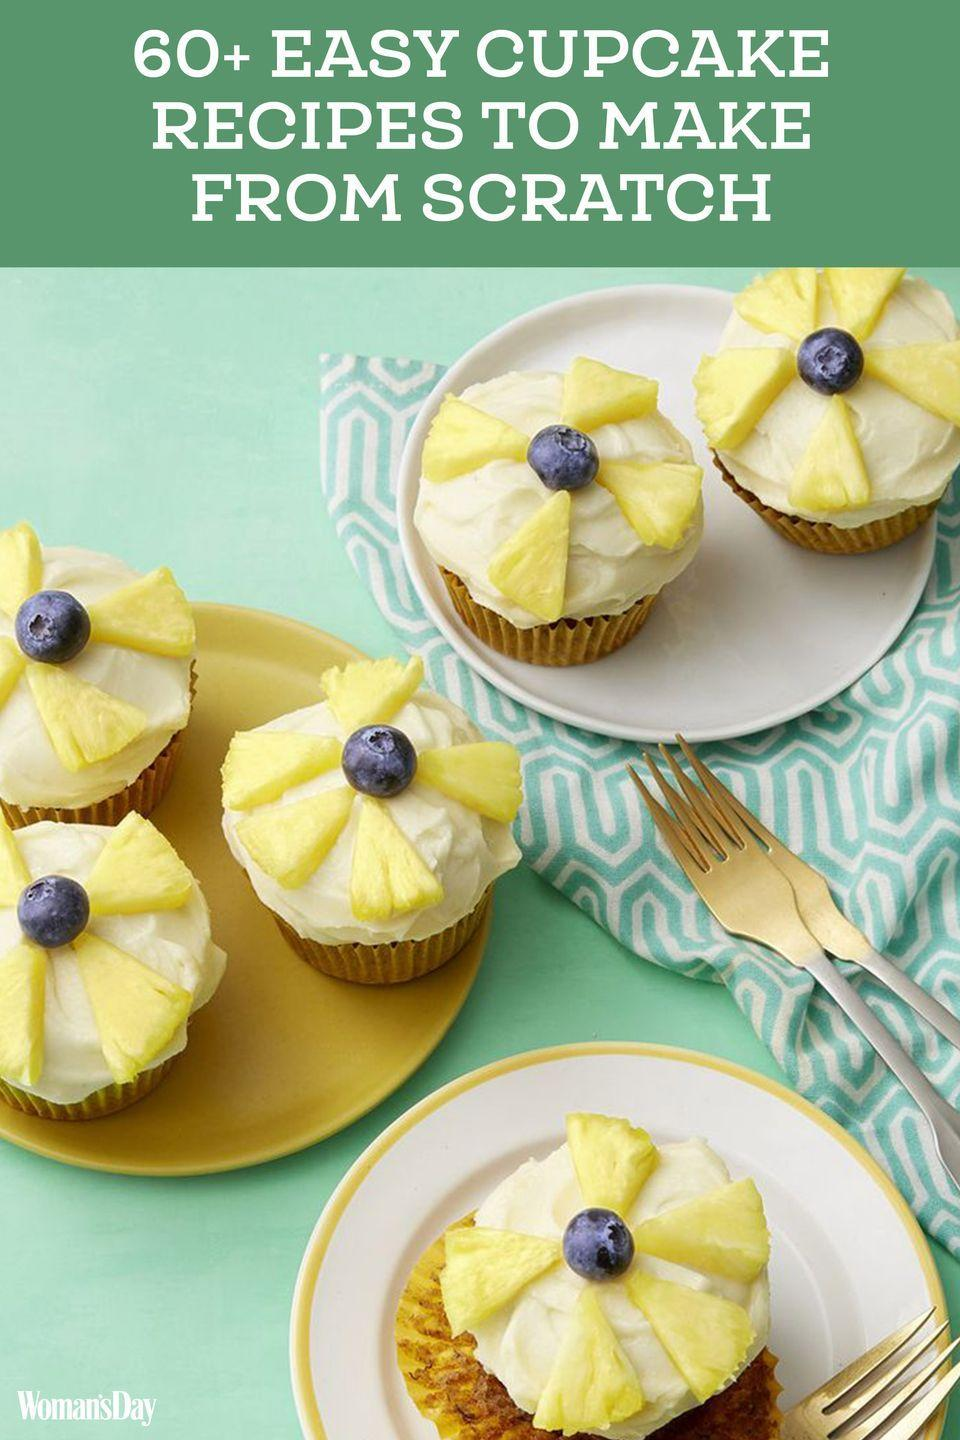 """<p>Save these easy cupcake recipes for later by pinning this image and follow <em>Woman's Day</em> on <a href=""""https://www.pinterest.com/womansday/"""" rel=""""nofollow noopener"""" target=""""_blank"""" data-ylk=""""slk:Pinterest"""" class=""""link rapid-noclick-resp"""">Pinterest</a> for more. </p>"""